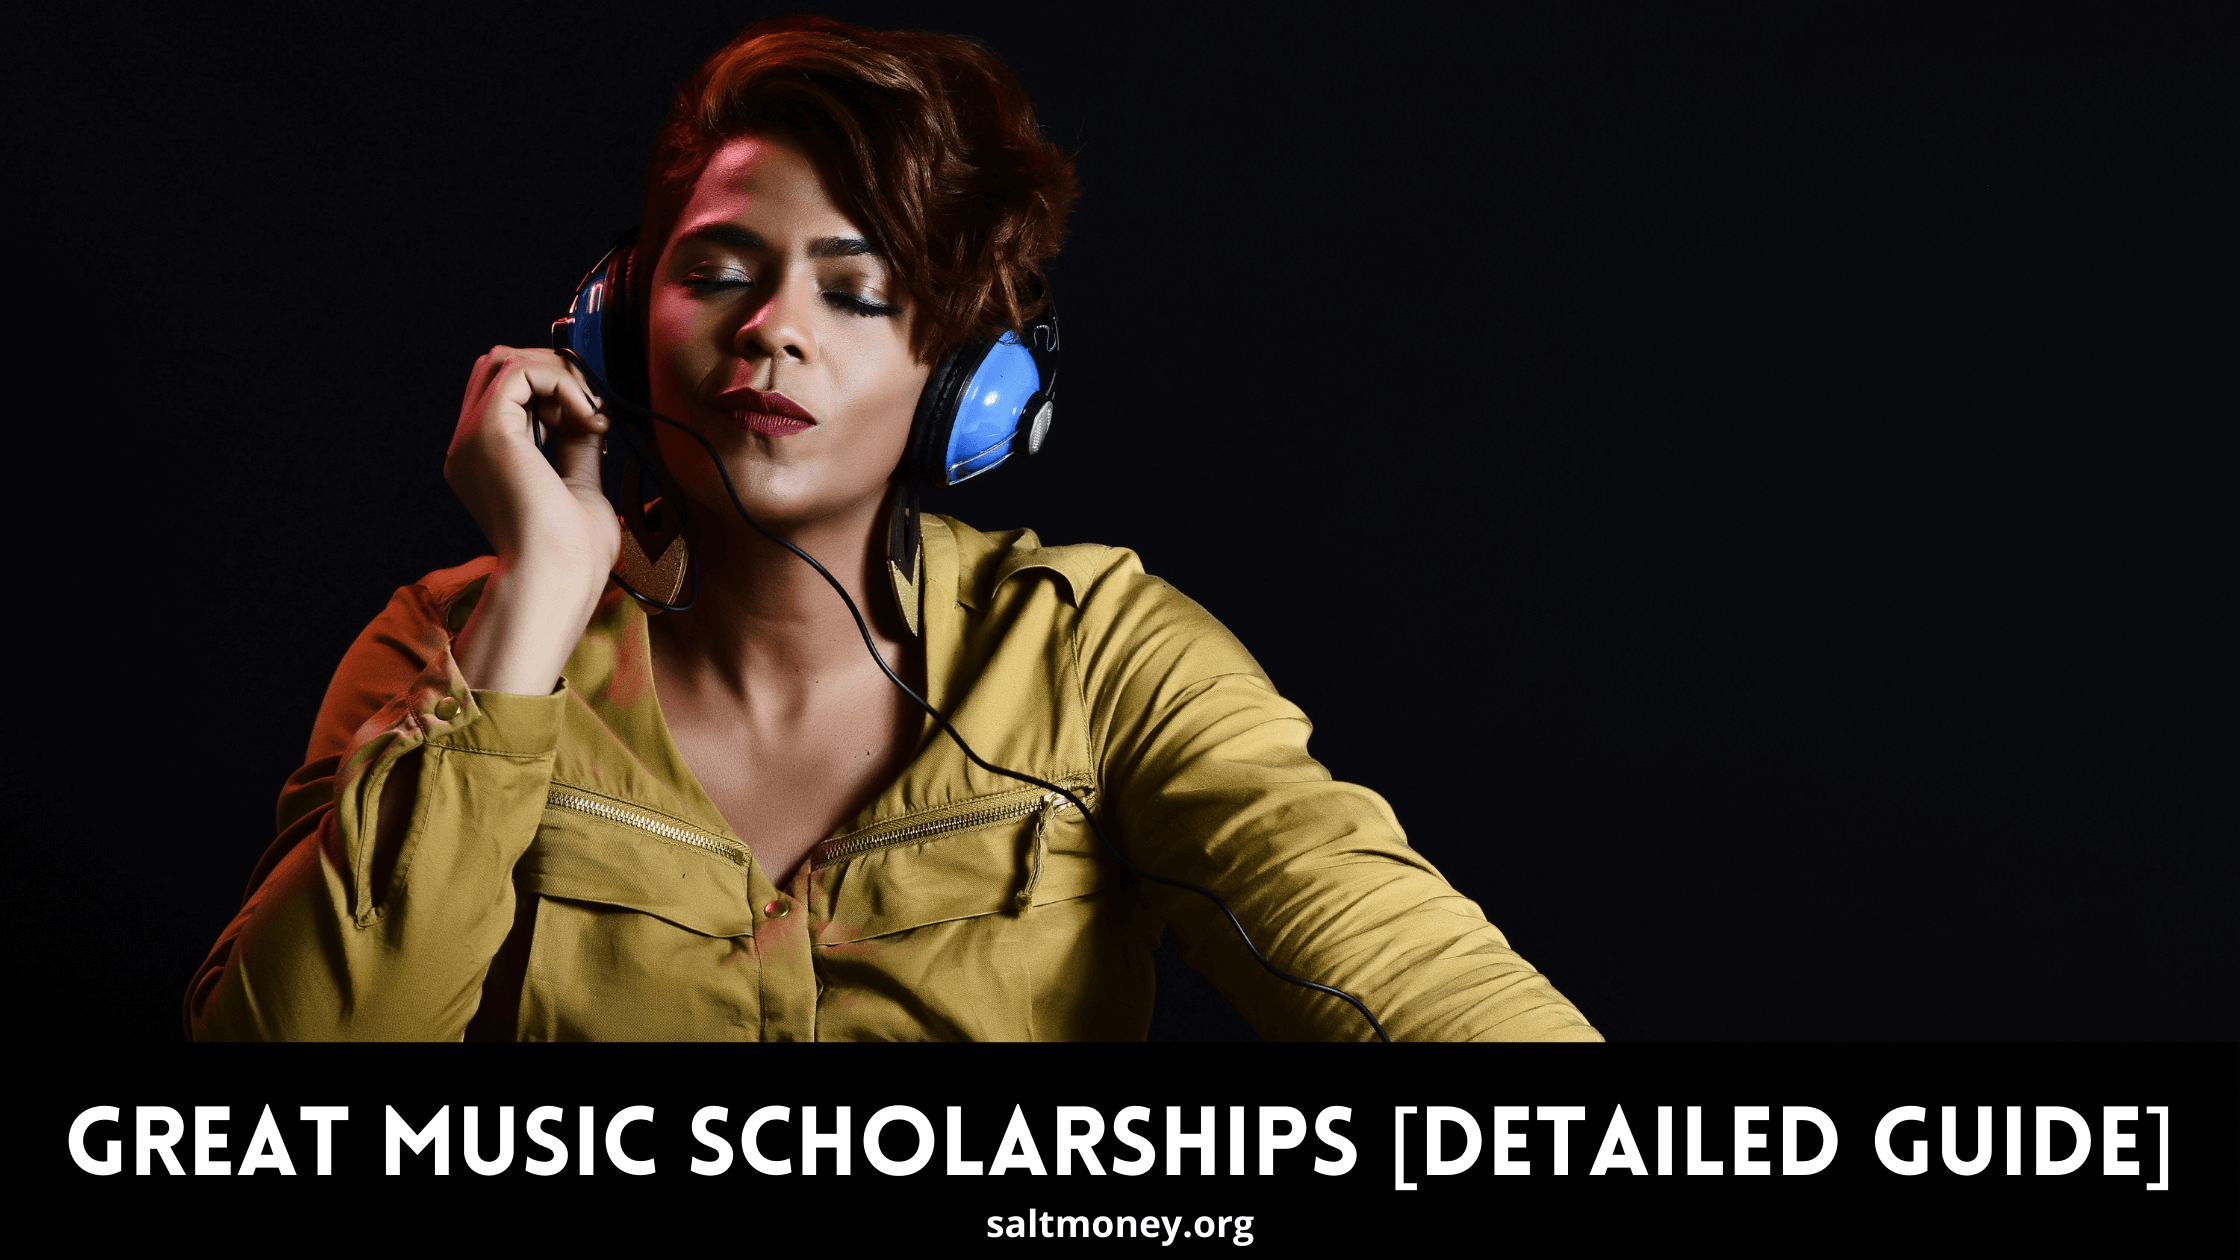 Great Music Scholarships